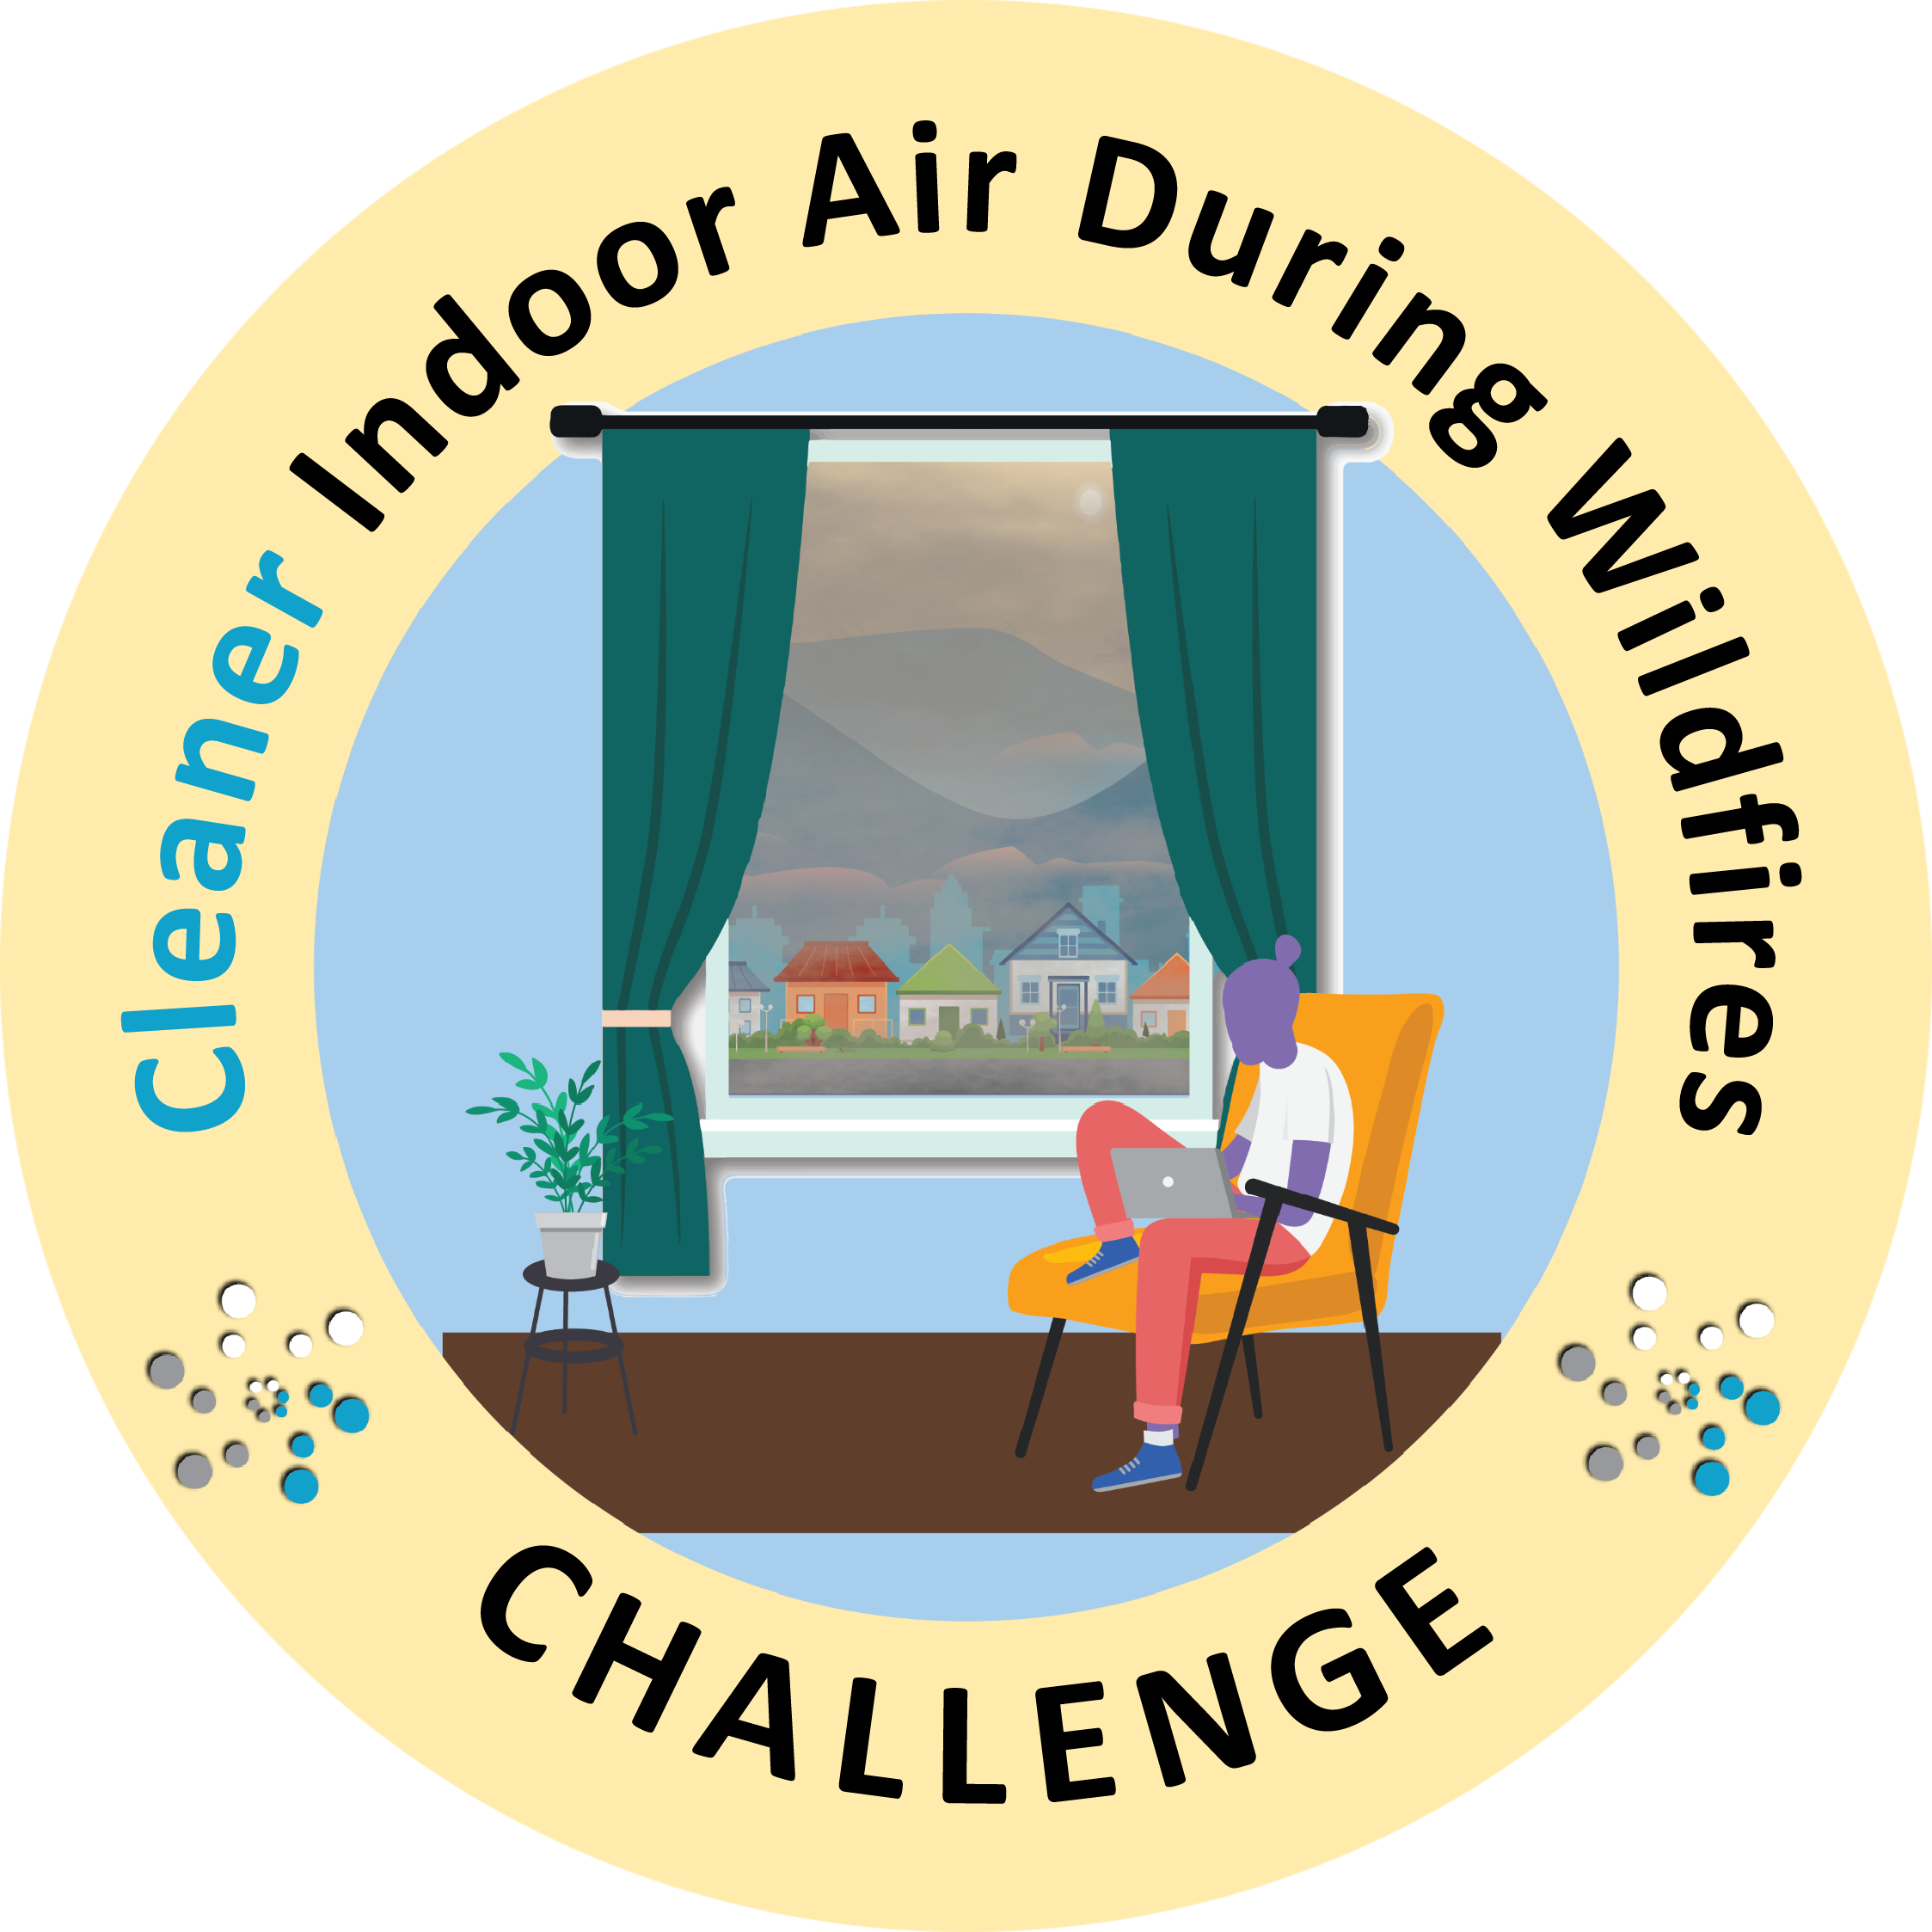 Cleaner Indoor Air During Wildfires Challenge